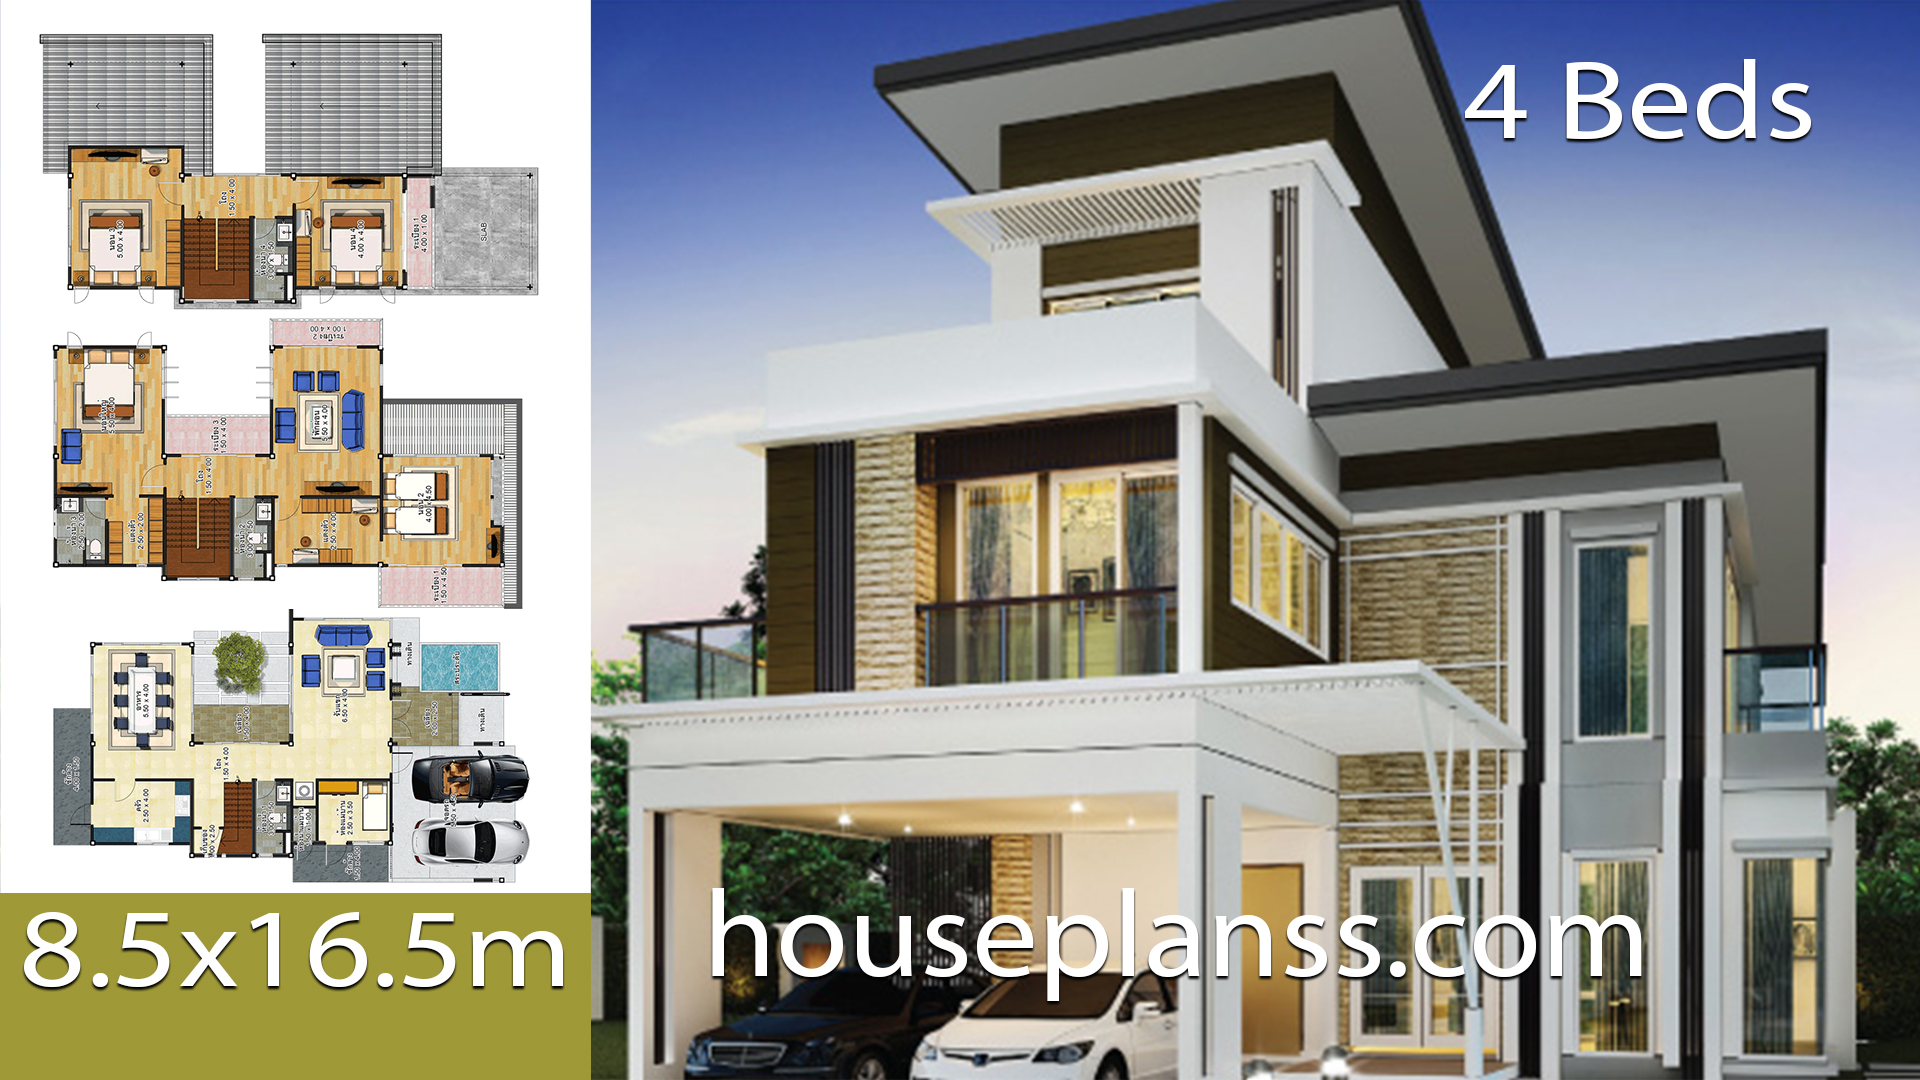 House design idea 8.5×16.5 with 4 bedrooms